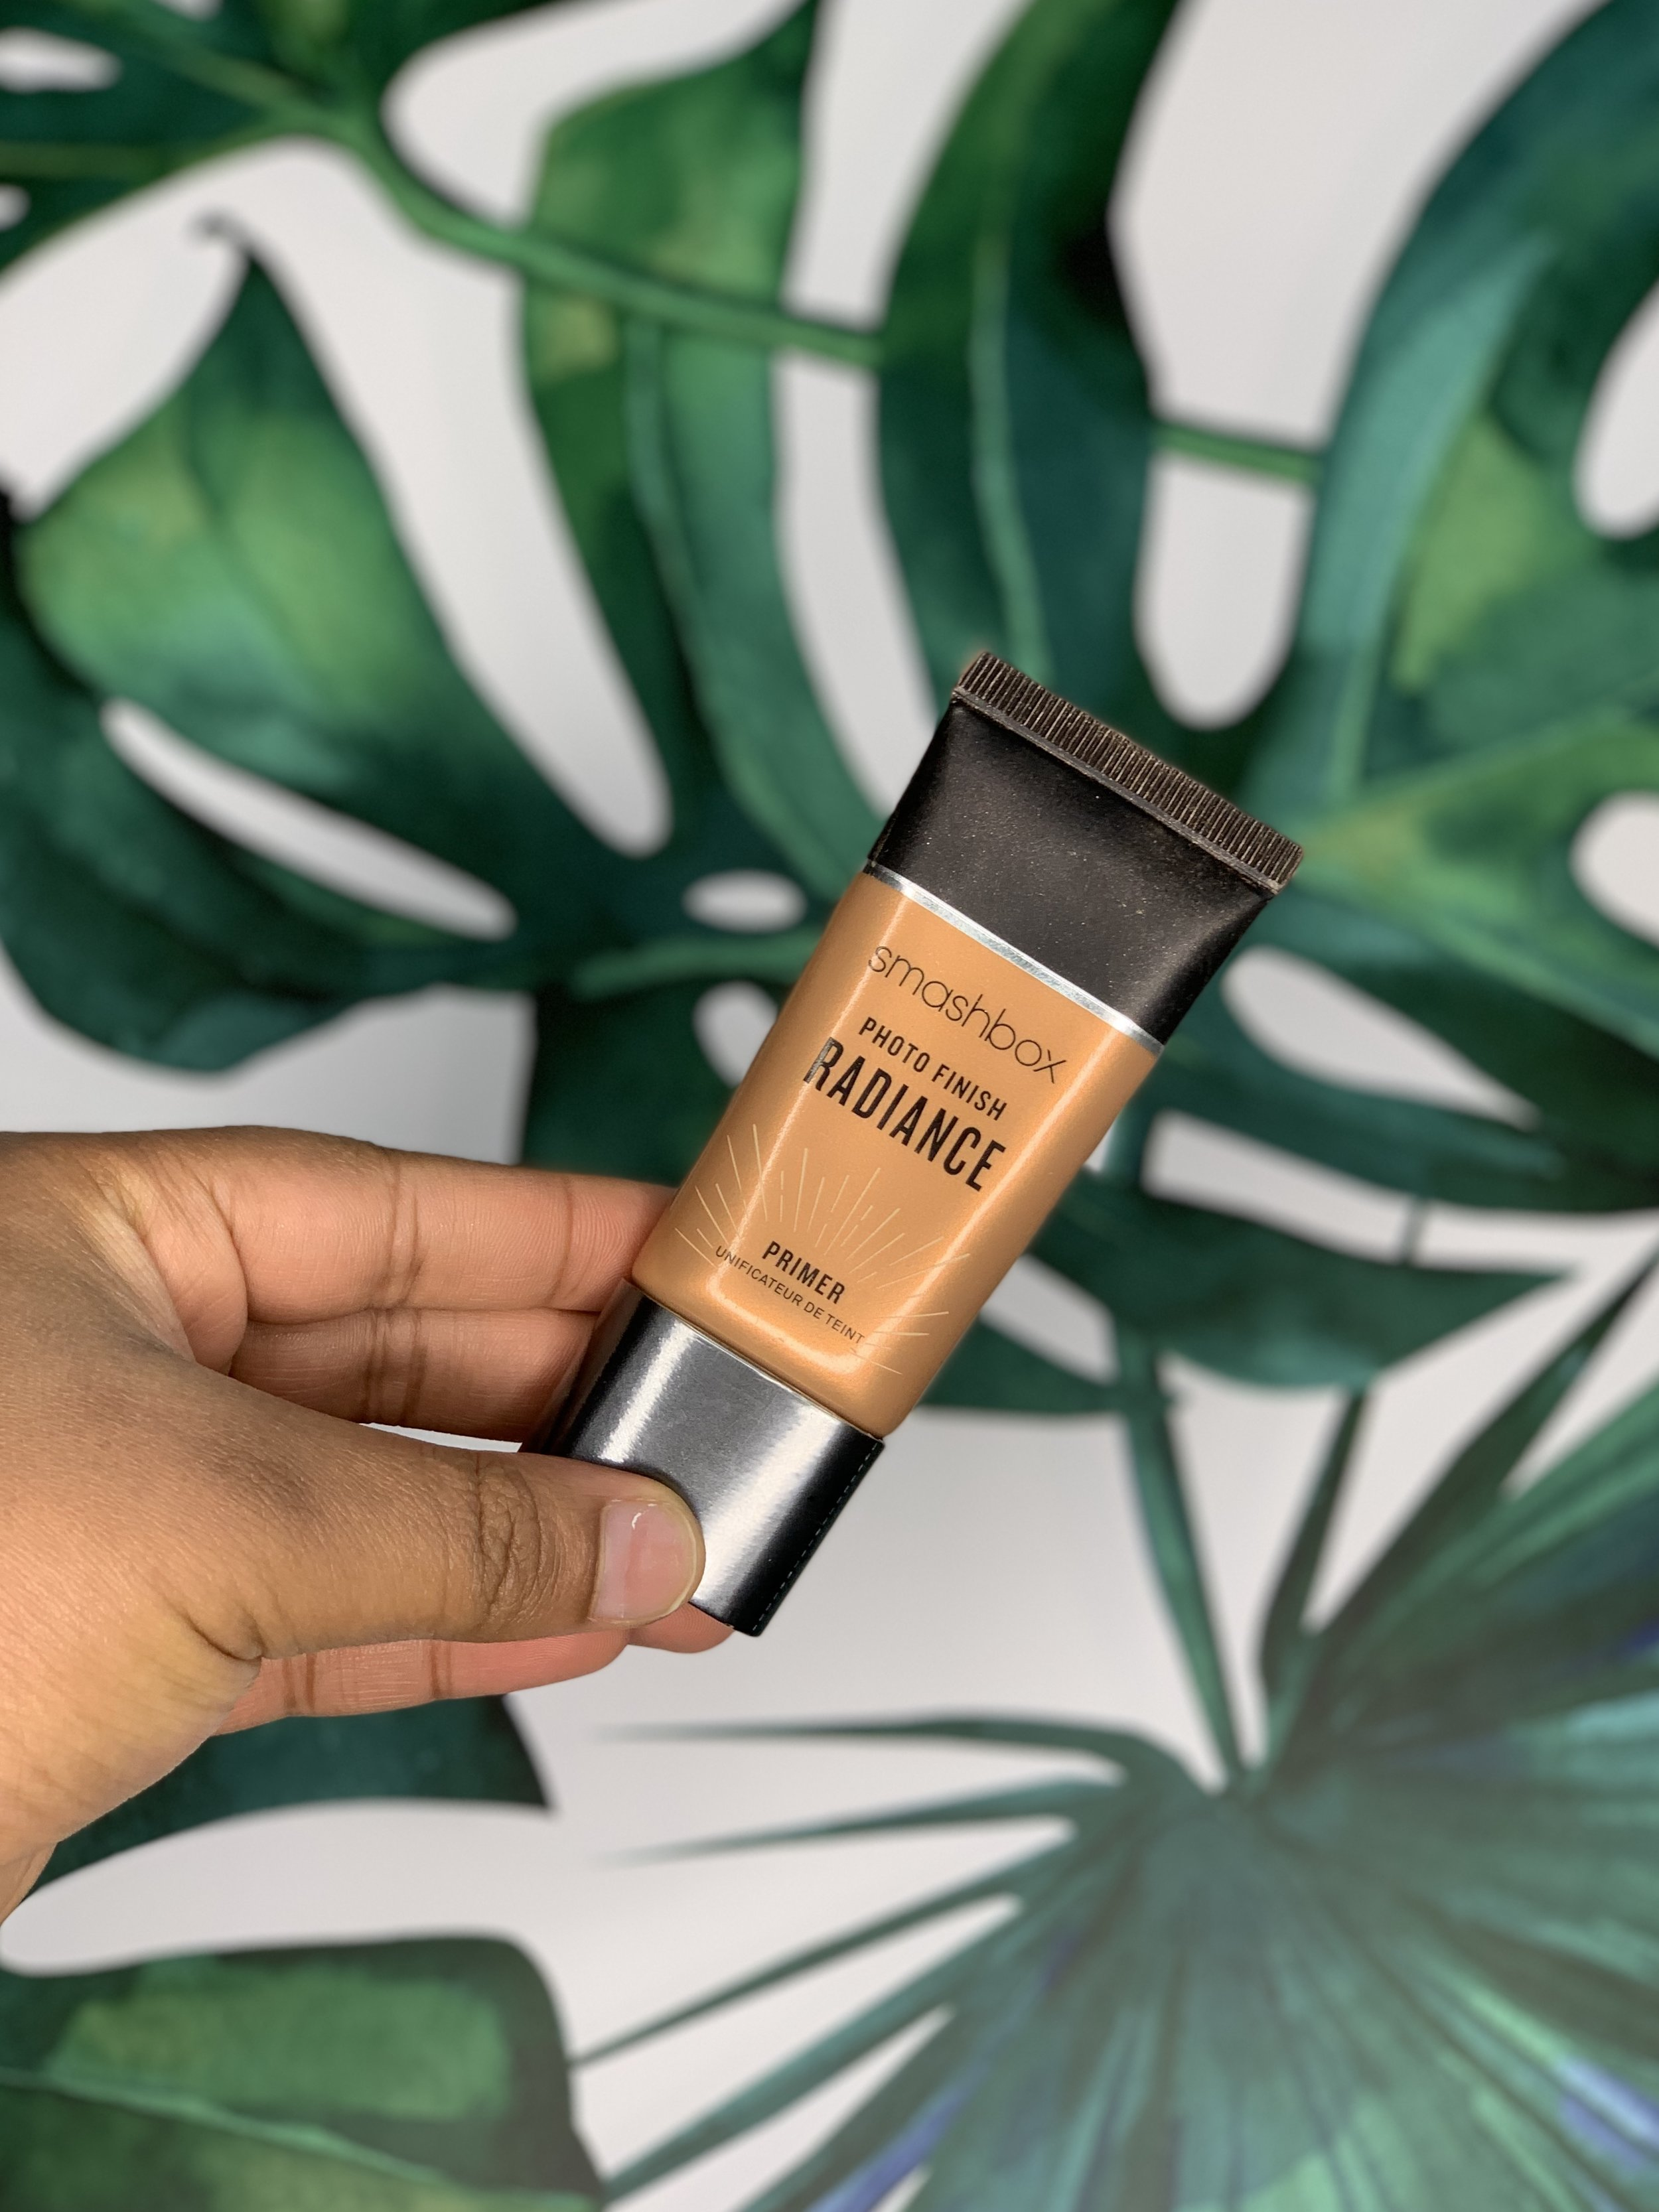 Primer - Smashbox Photo Finish Radiance primer is also one of my holy grails. I have been using it for three years now and anytime I try to use another primer, I always run back to this!! It keeps my makeup in place and my base always looks so beautiful when I use it.